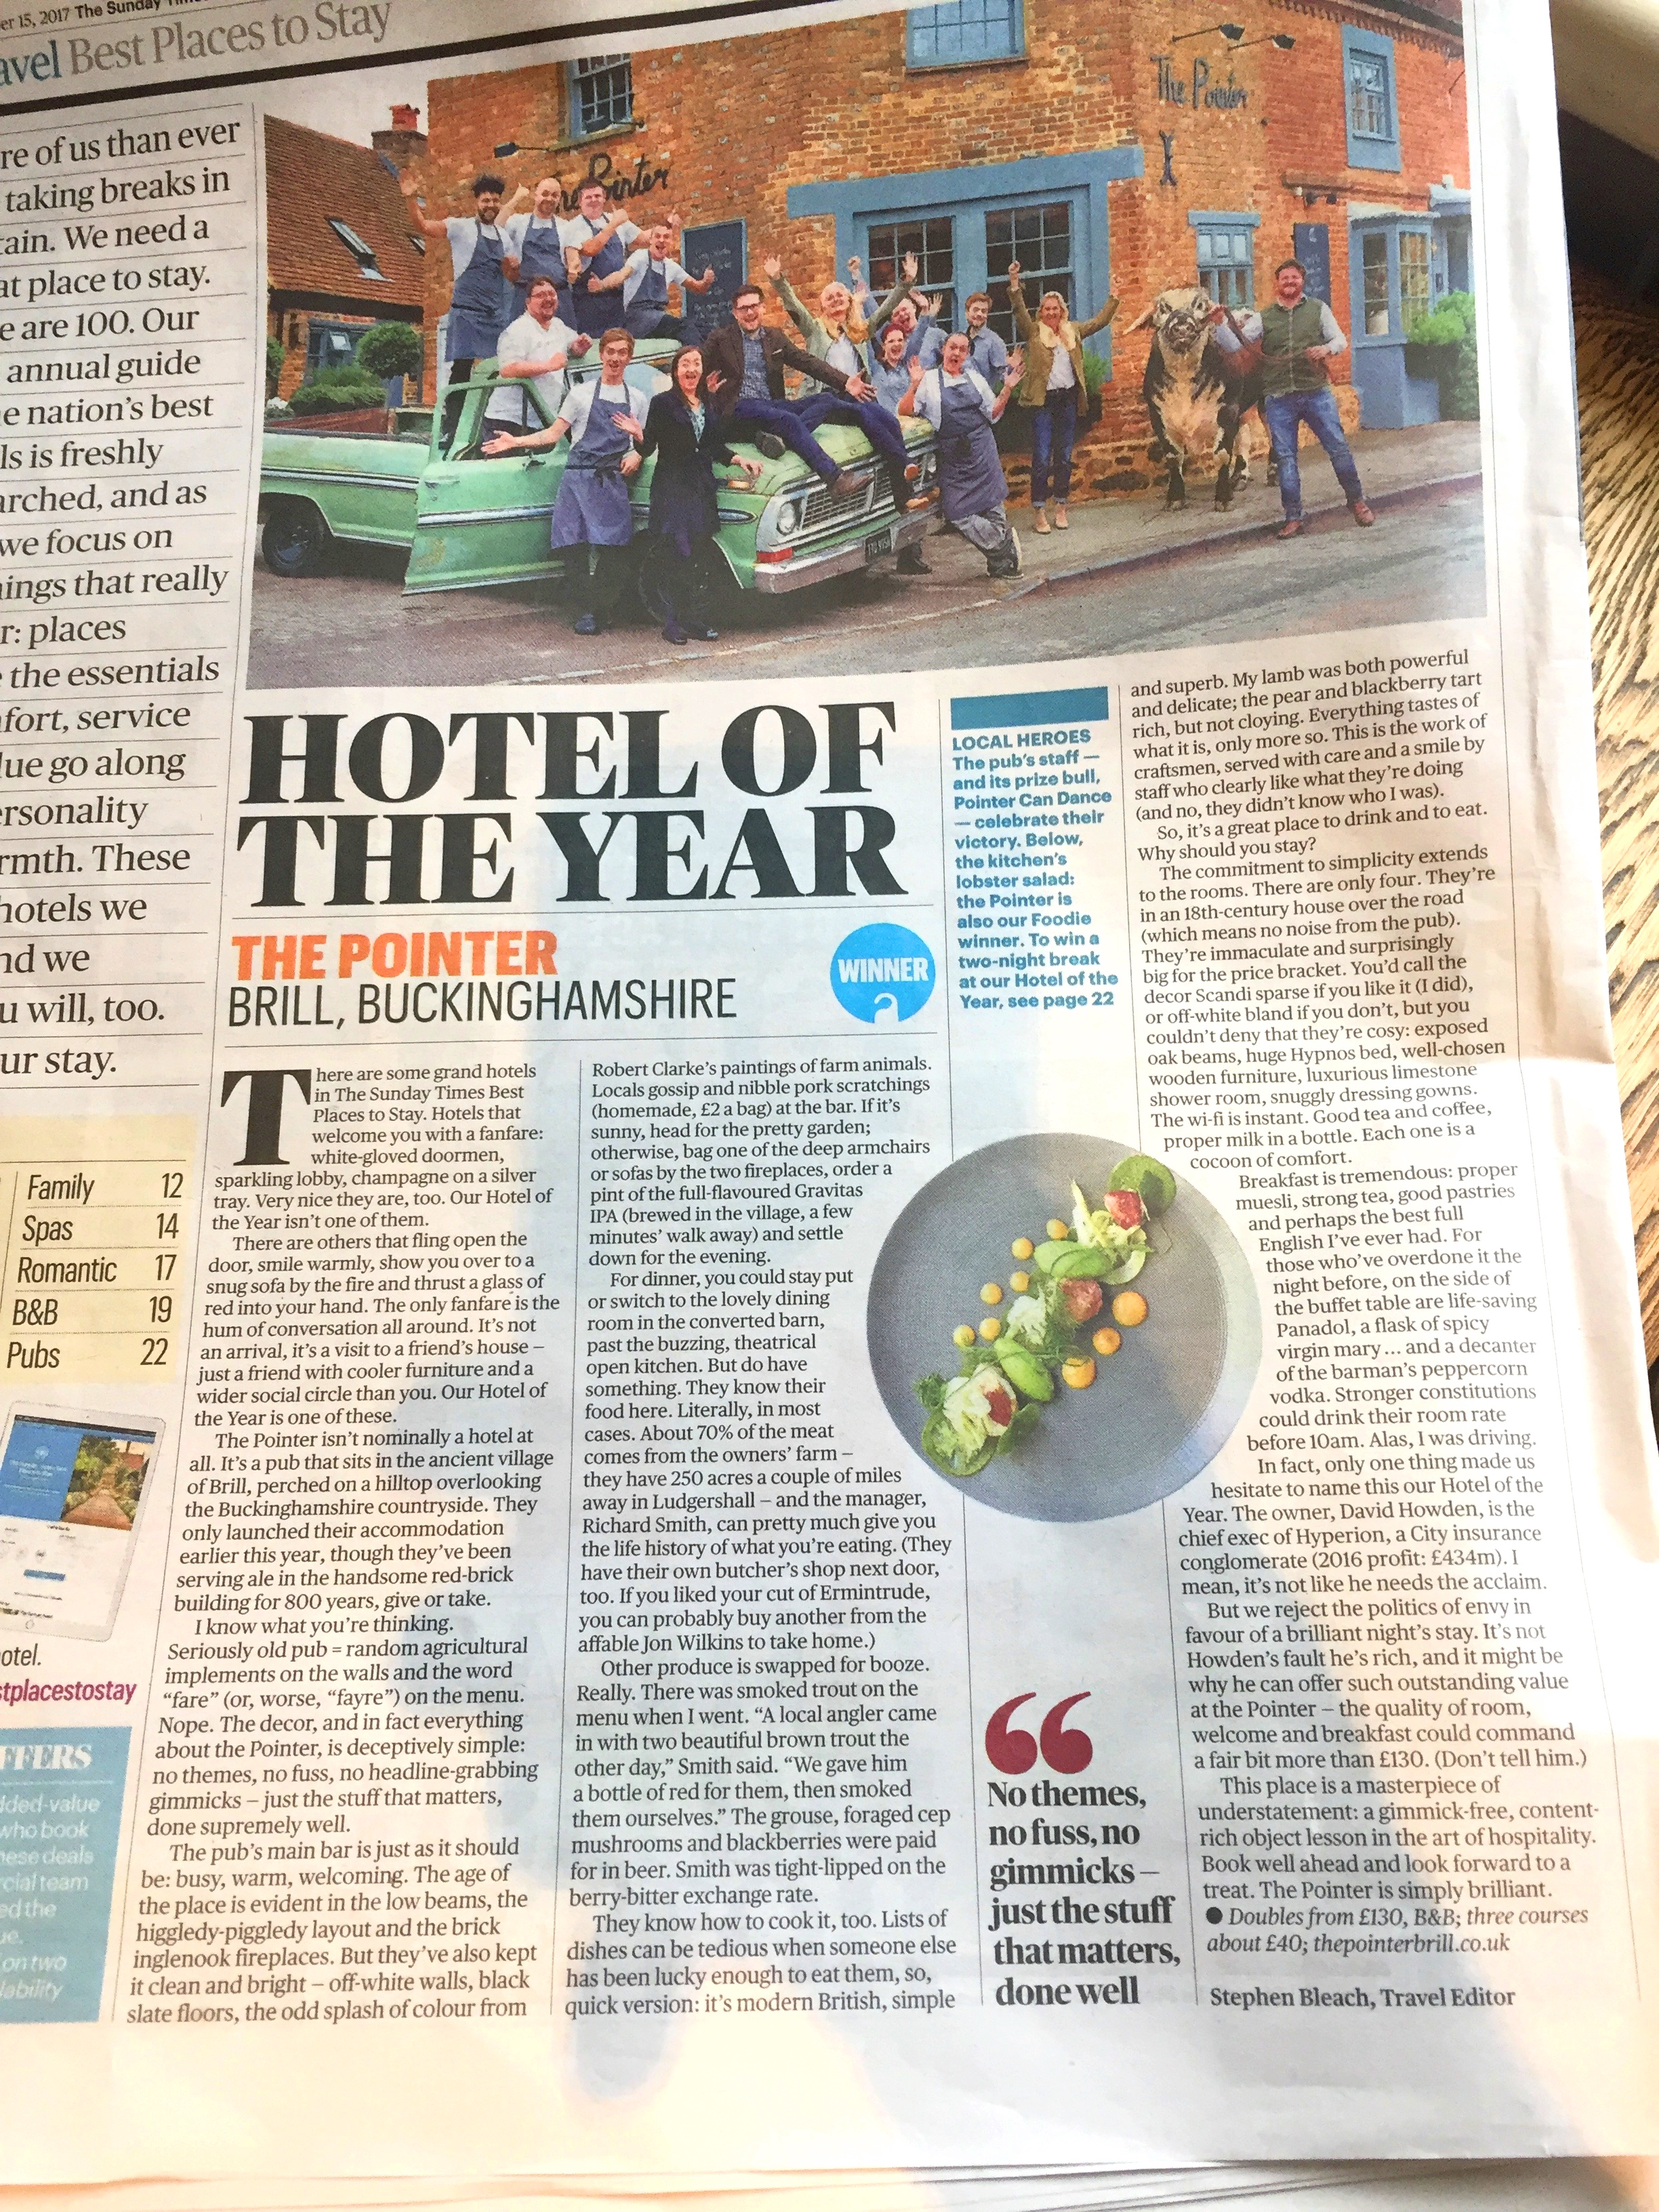 Hotel of the Year Sunday Times